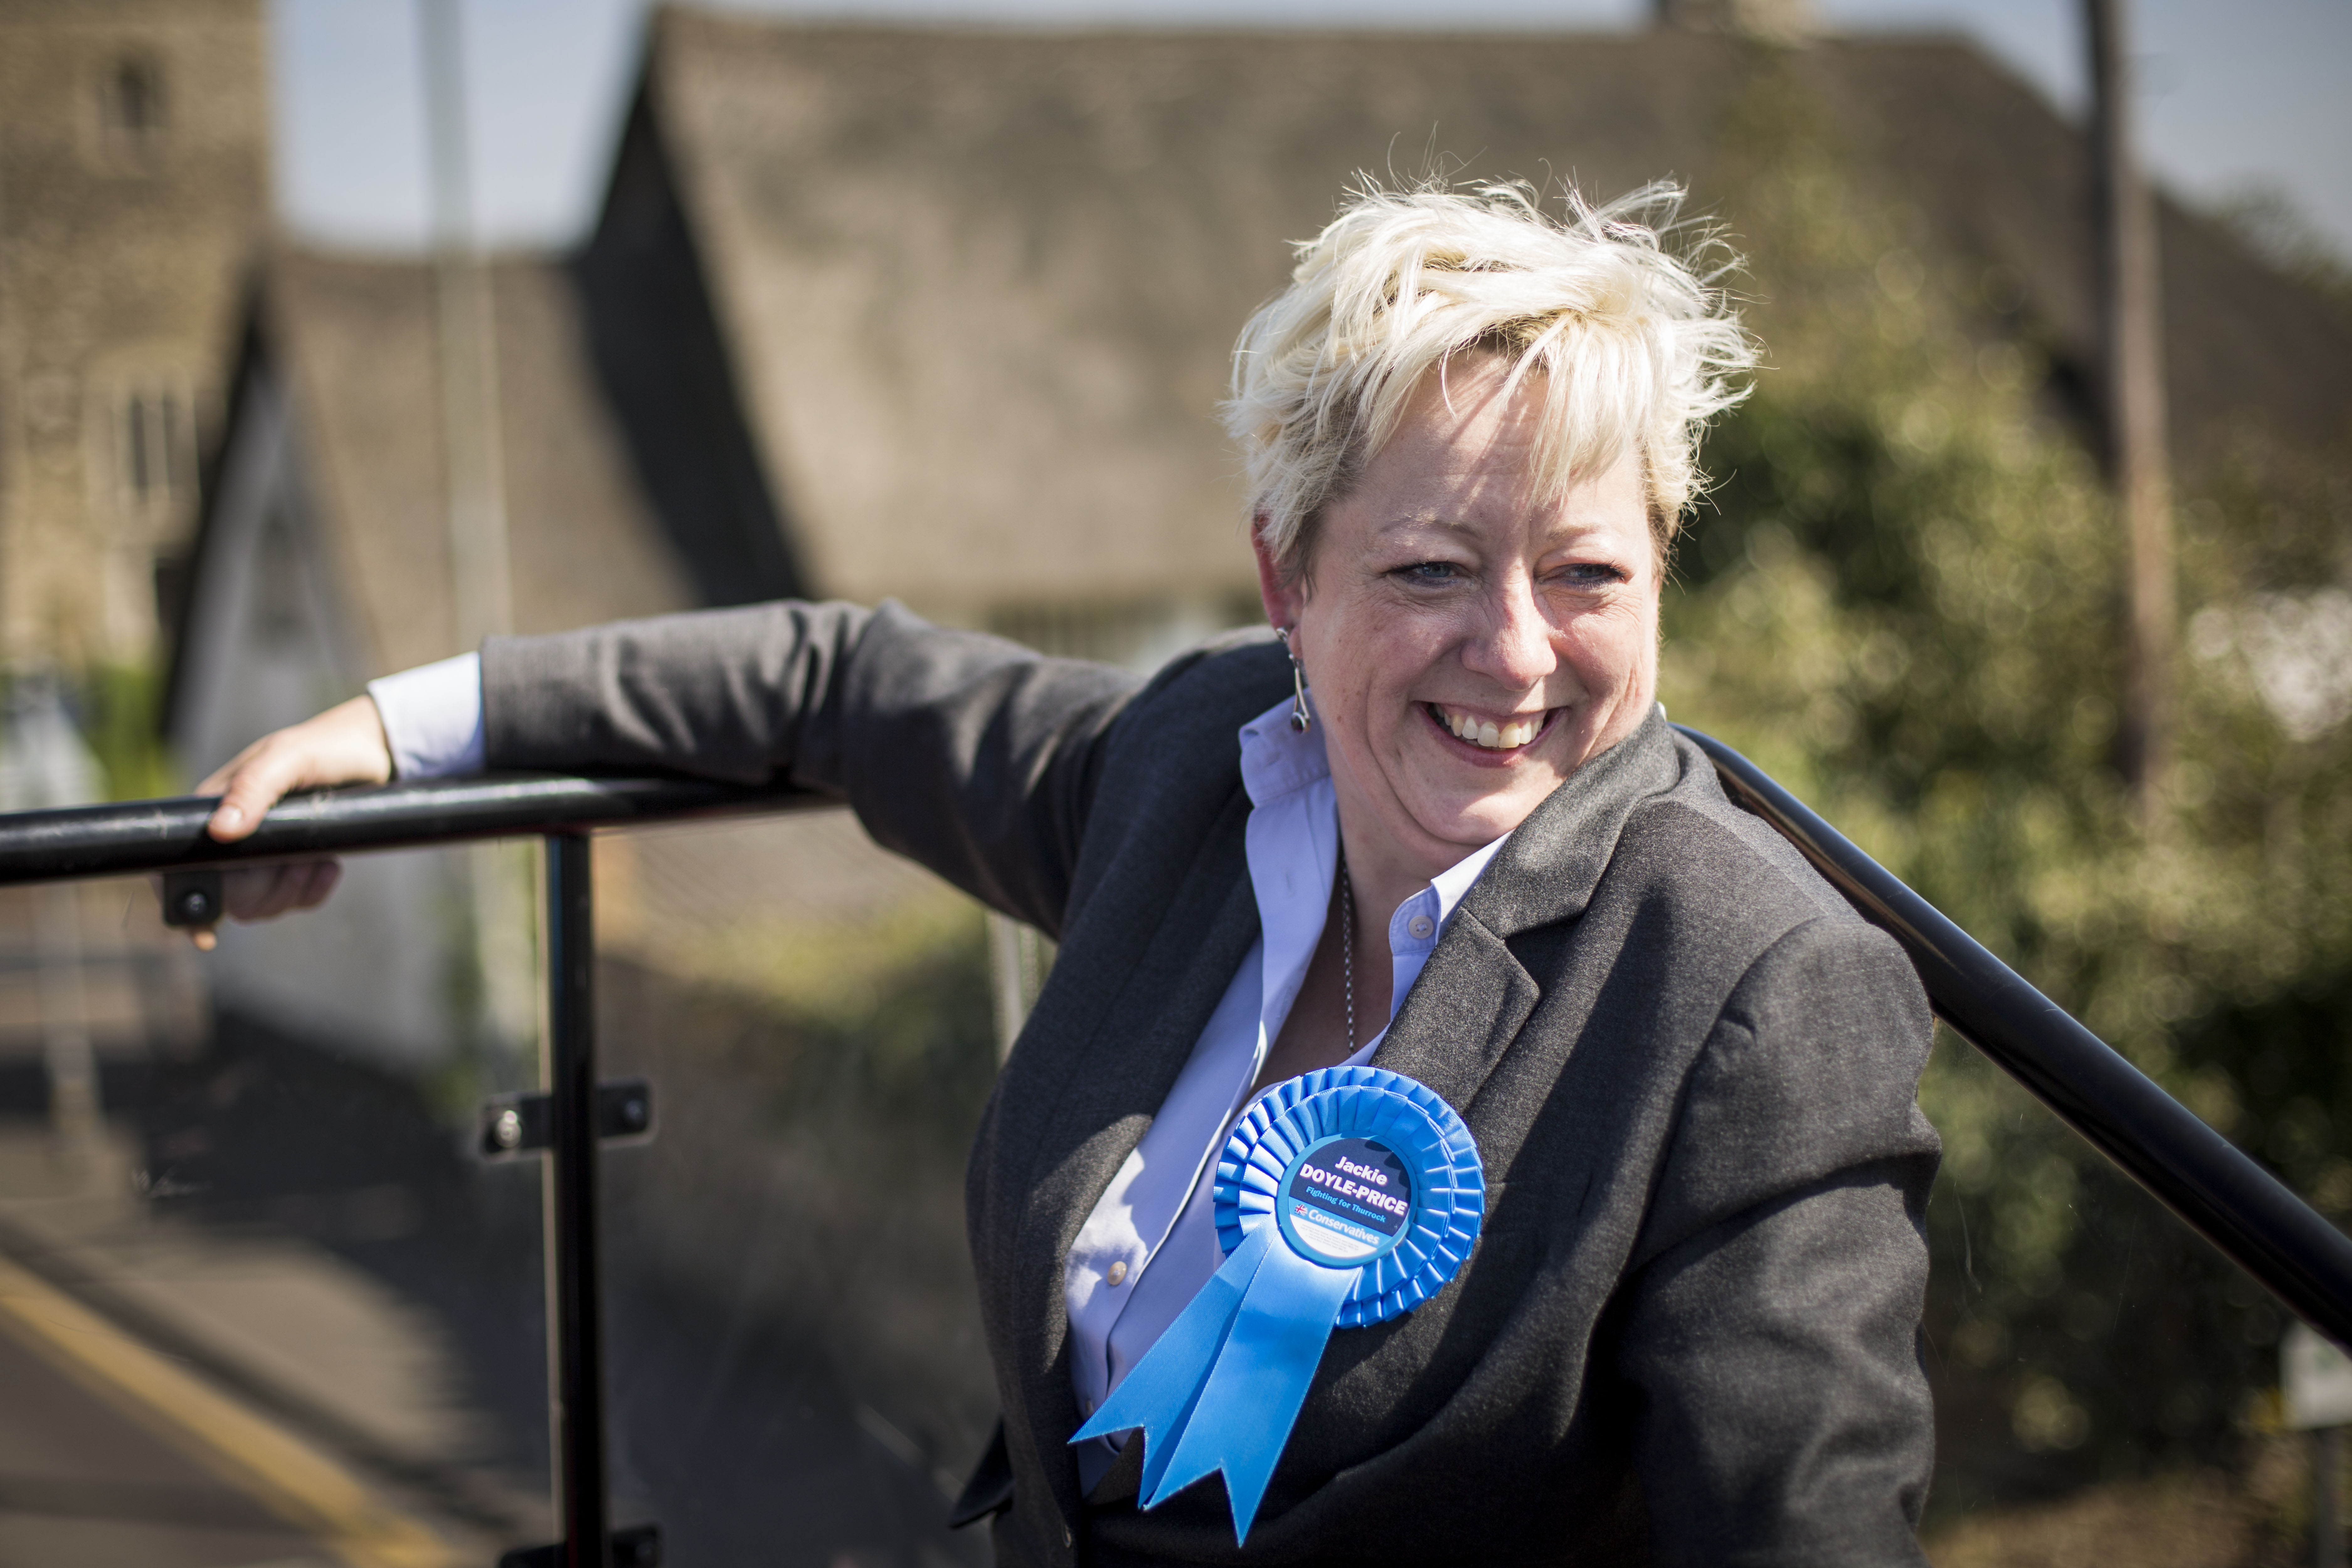 Jackie Doyle-Price, incumbent Conservative Member of Parliament (MP) for Thurrock, travels around her constituency in Thurrock, England on April 21, 2015.